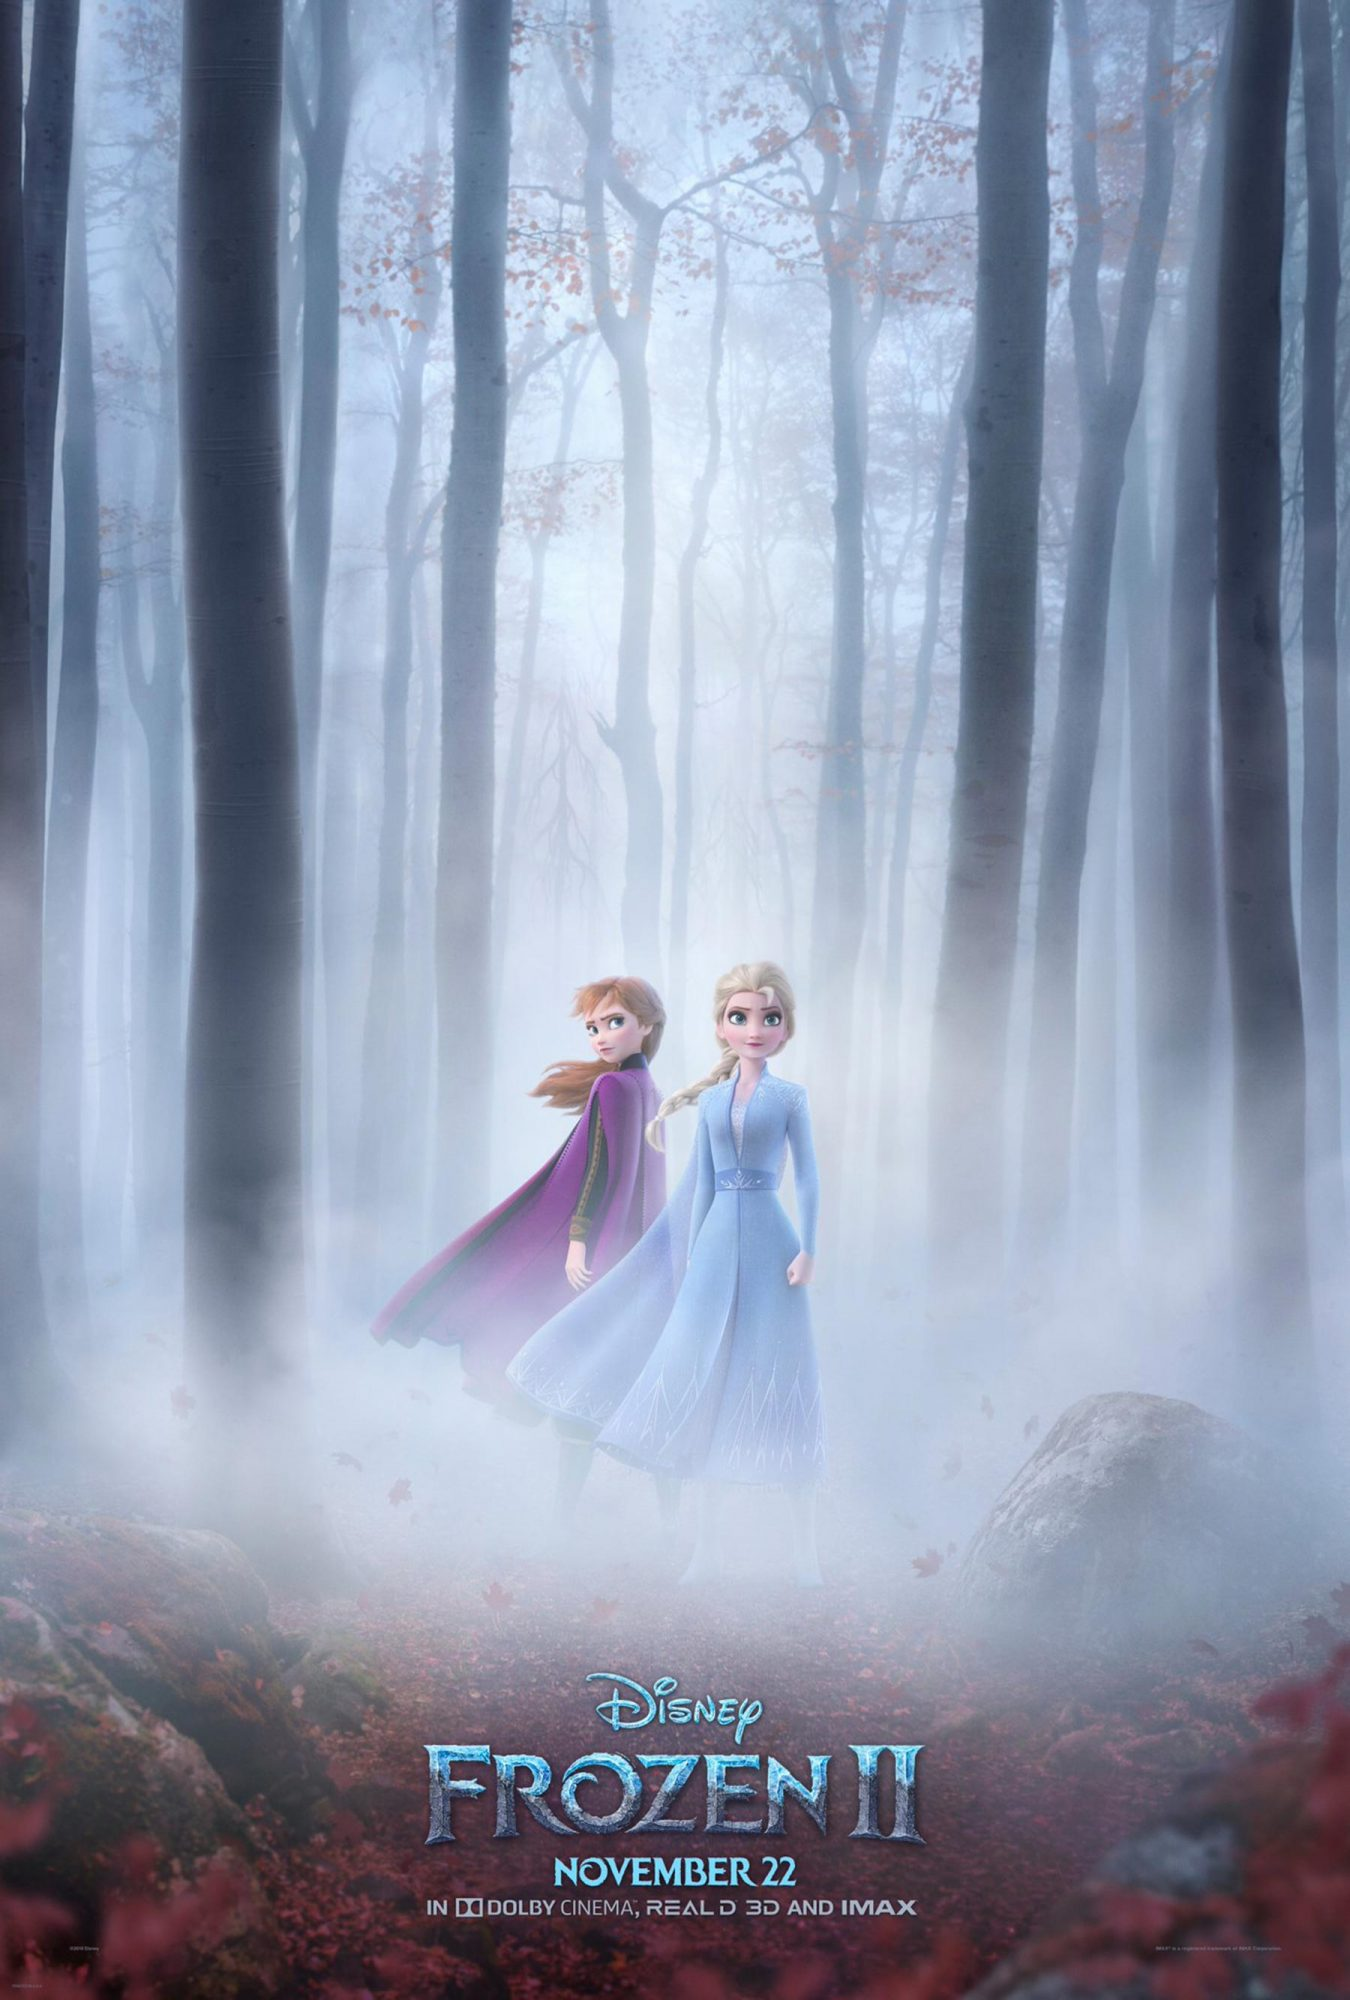 WATCH: Elsa and Anna Journey Outside Arendelle in New Action-Packed Frozen 2 Trailer frozen-ii